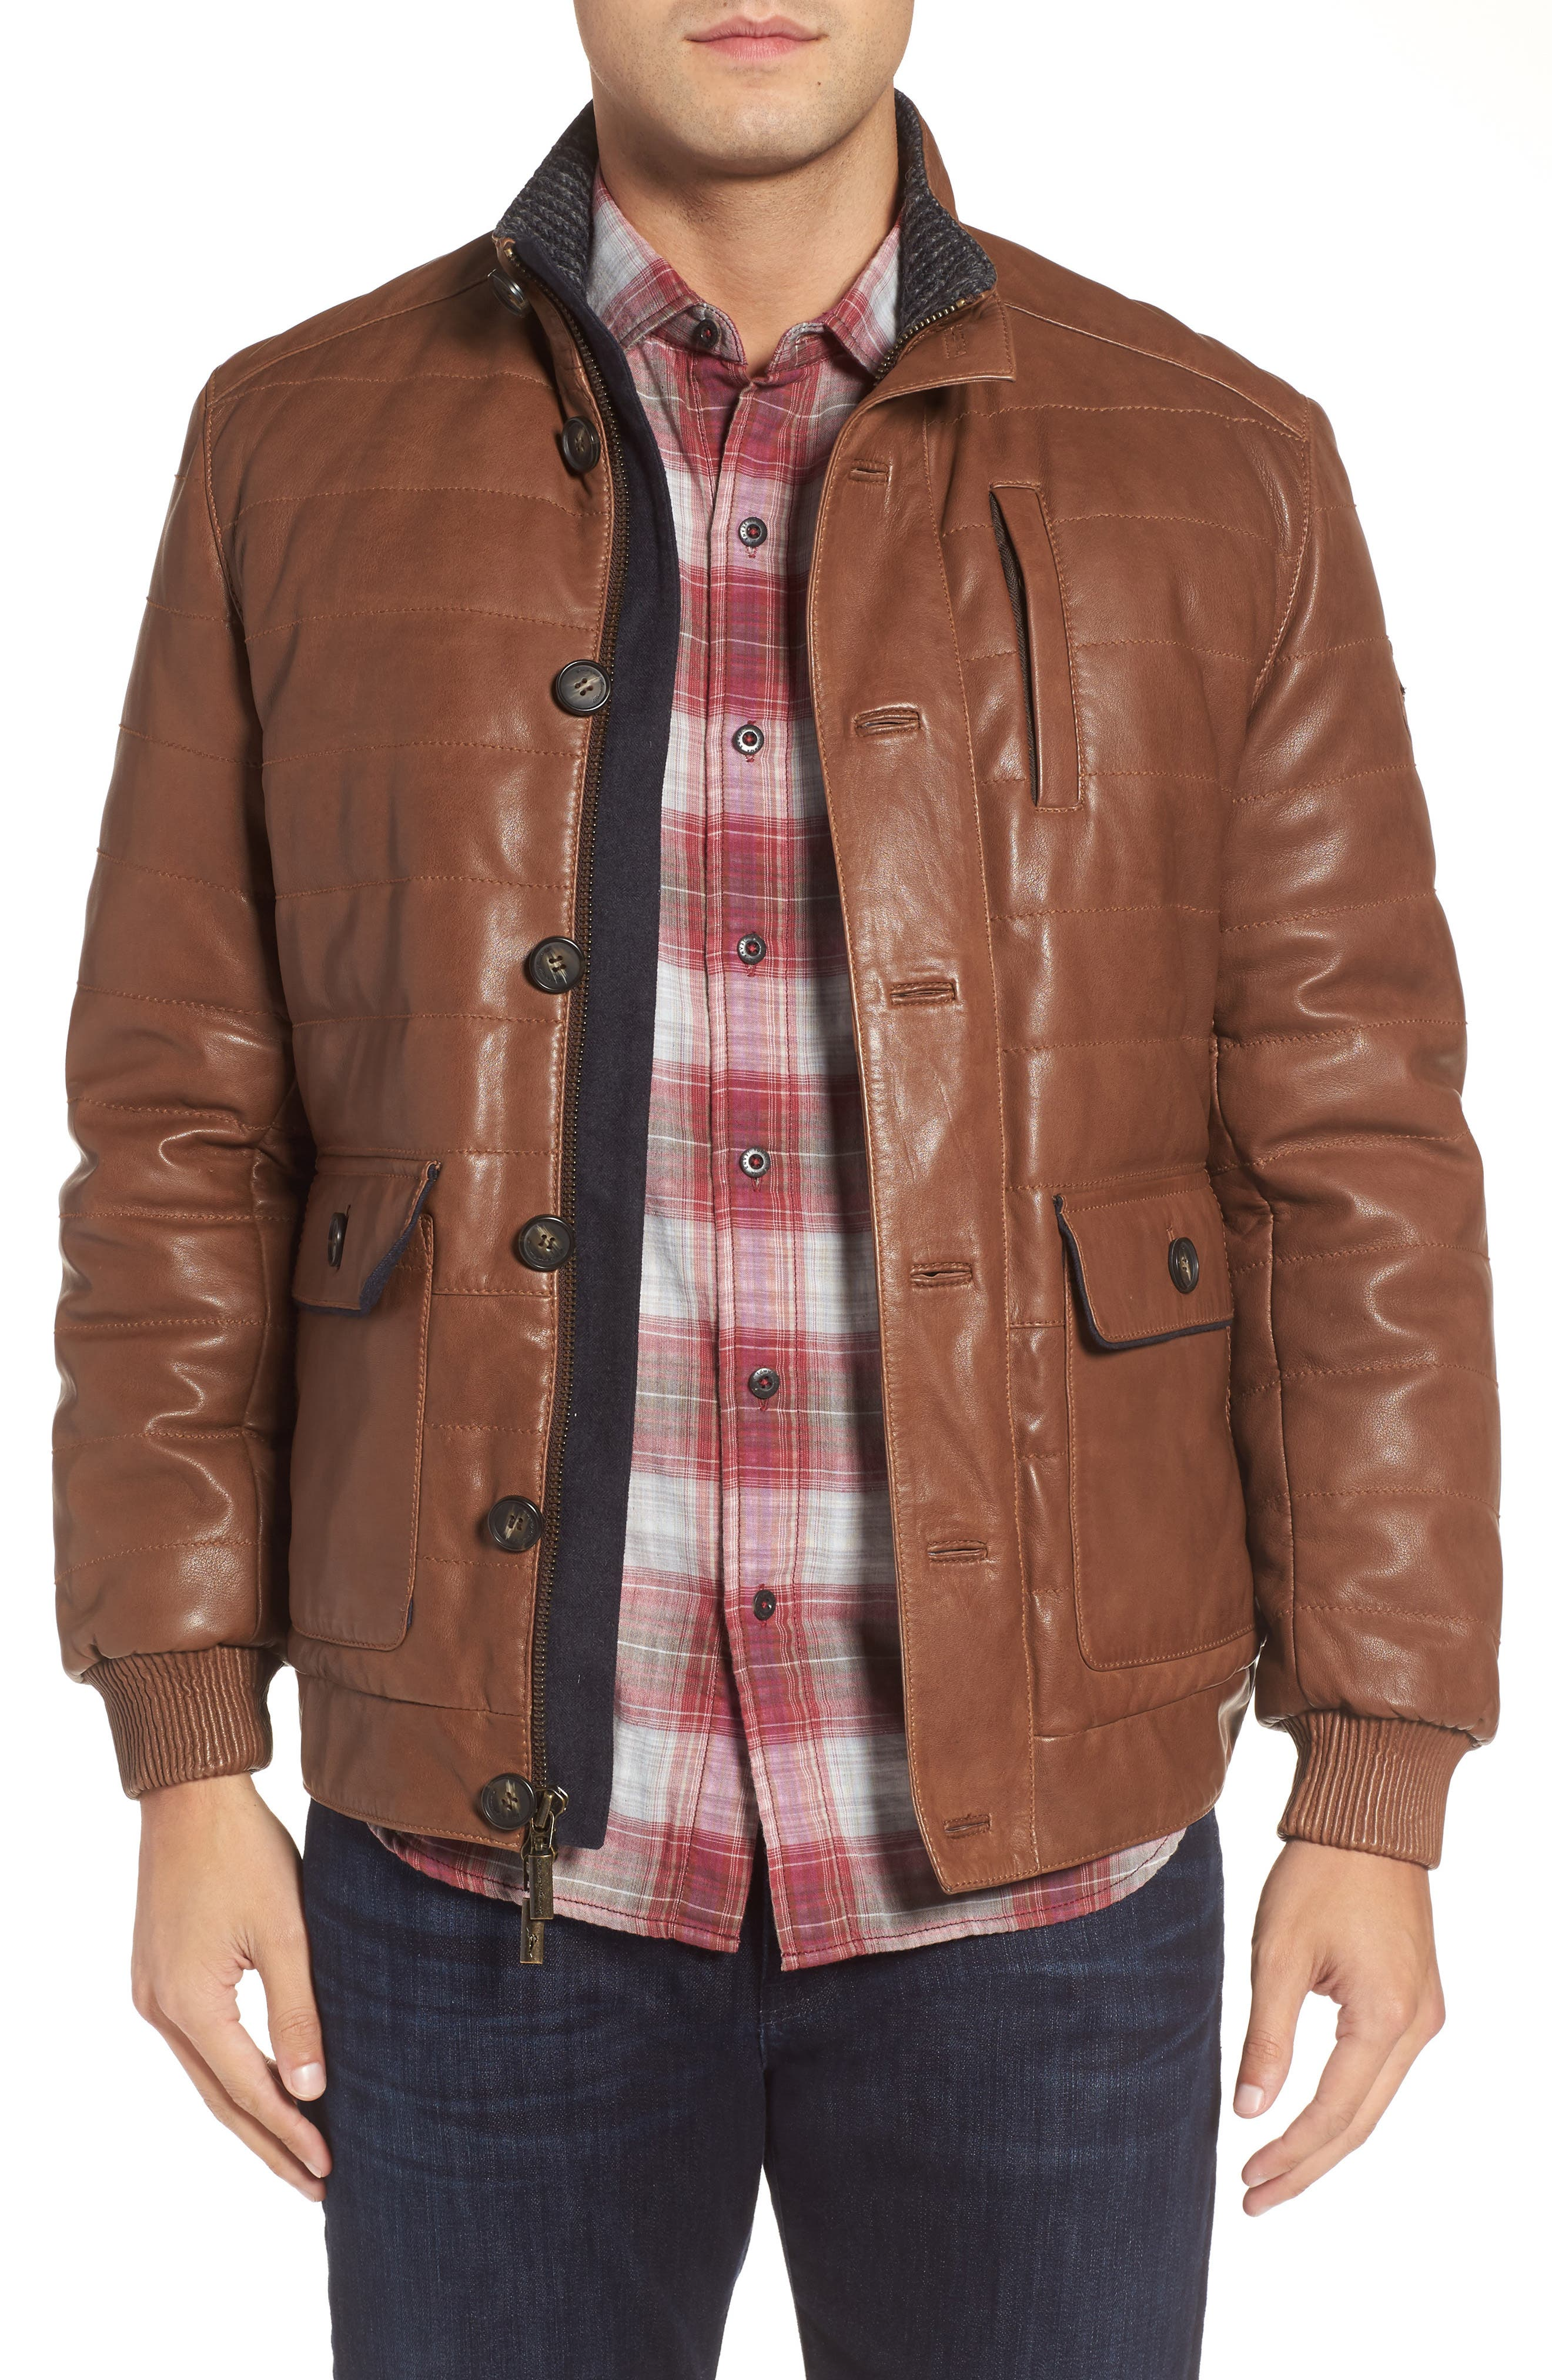 Snowside Leather Bomber Jacket,                             Main thumbnail 1, color,                             Brown Enough